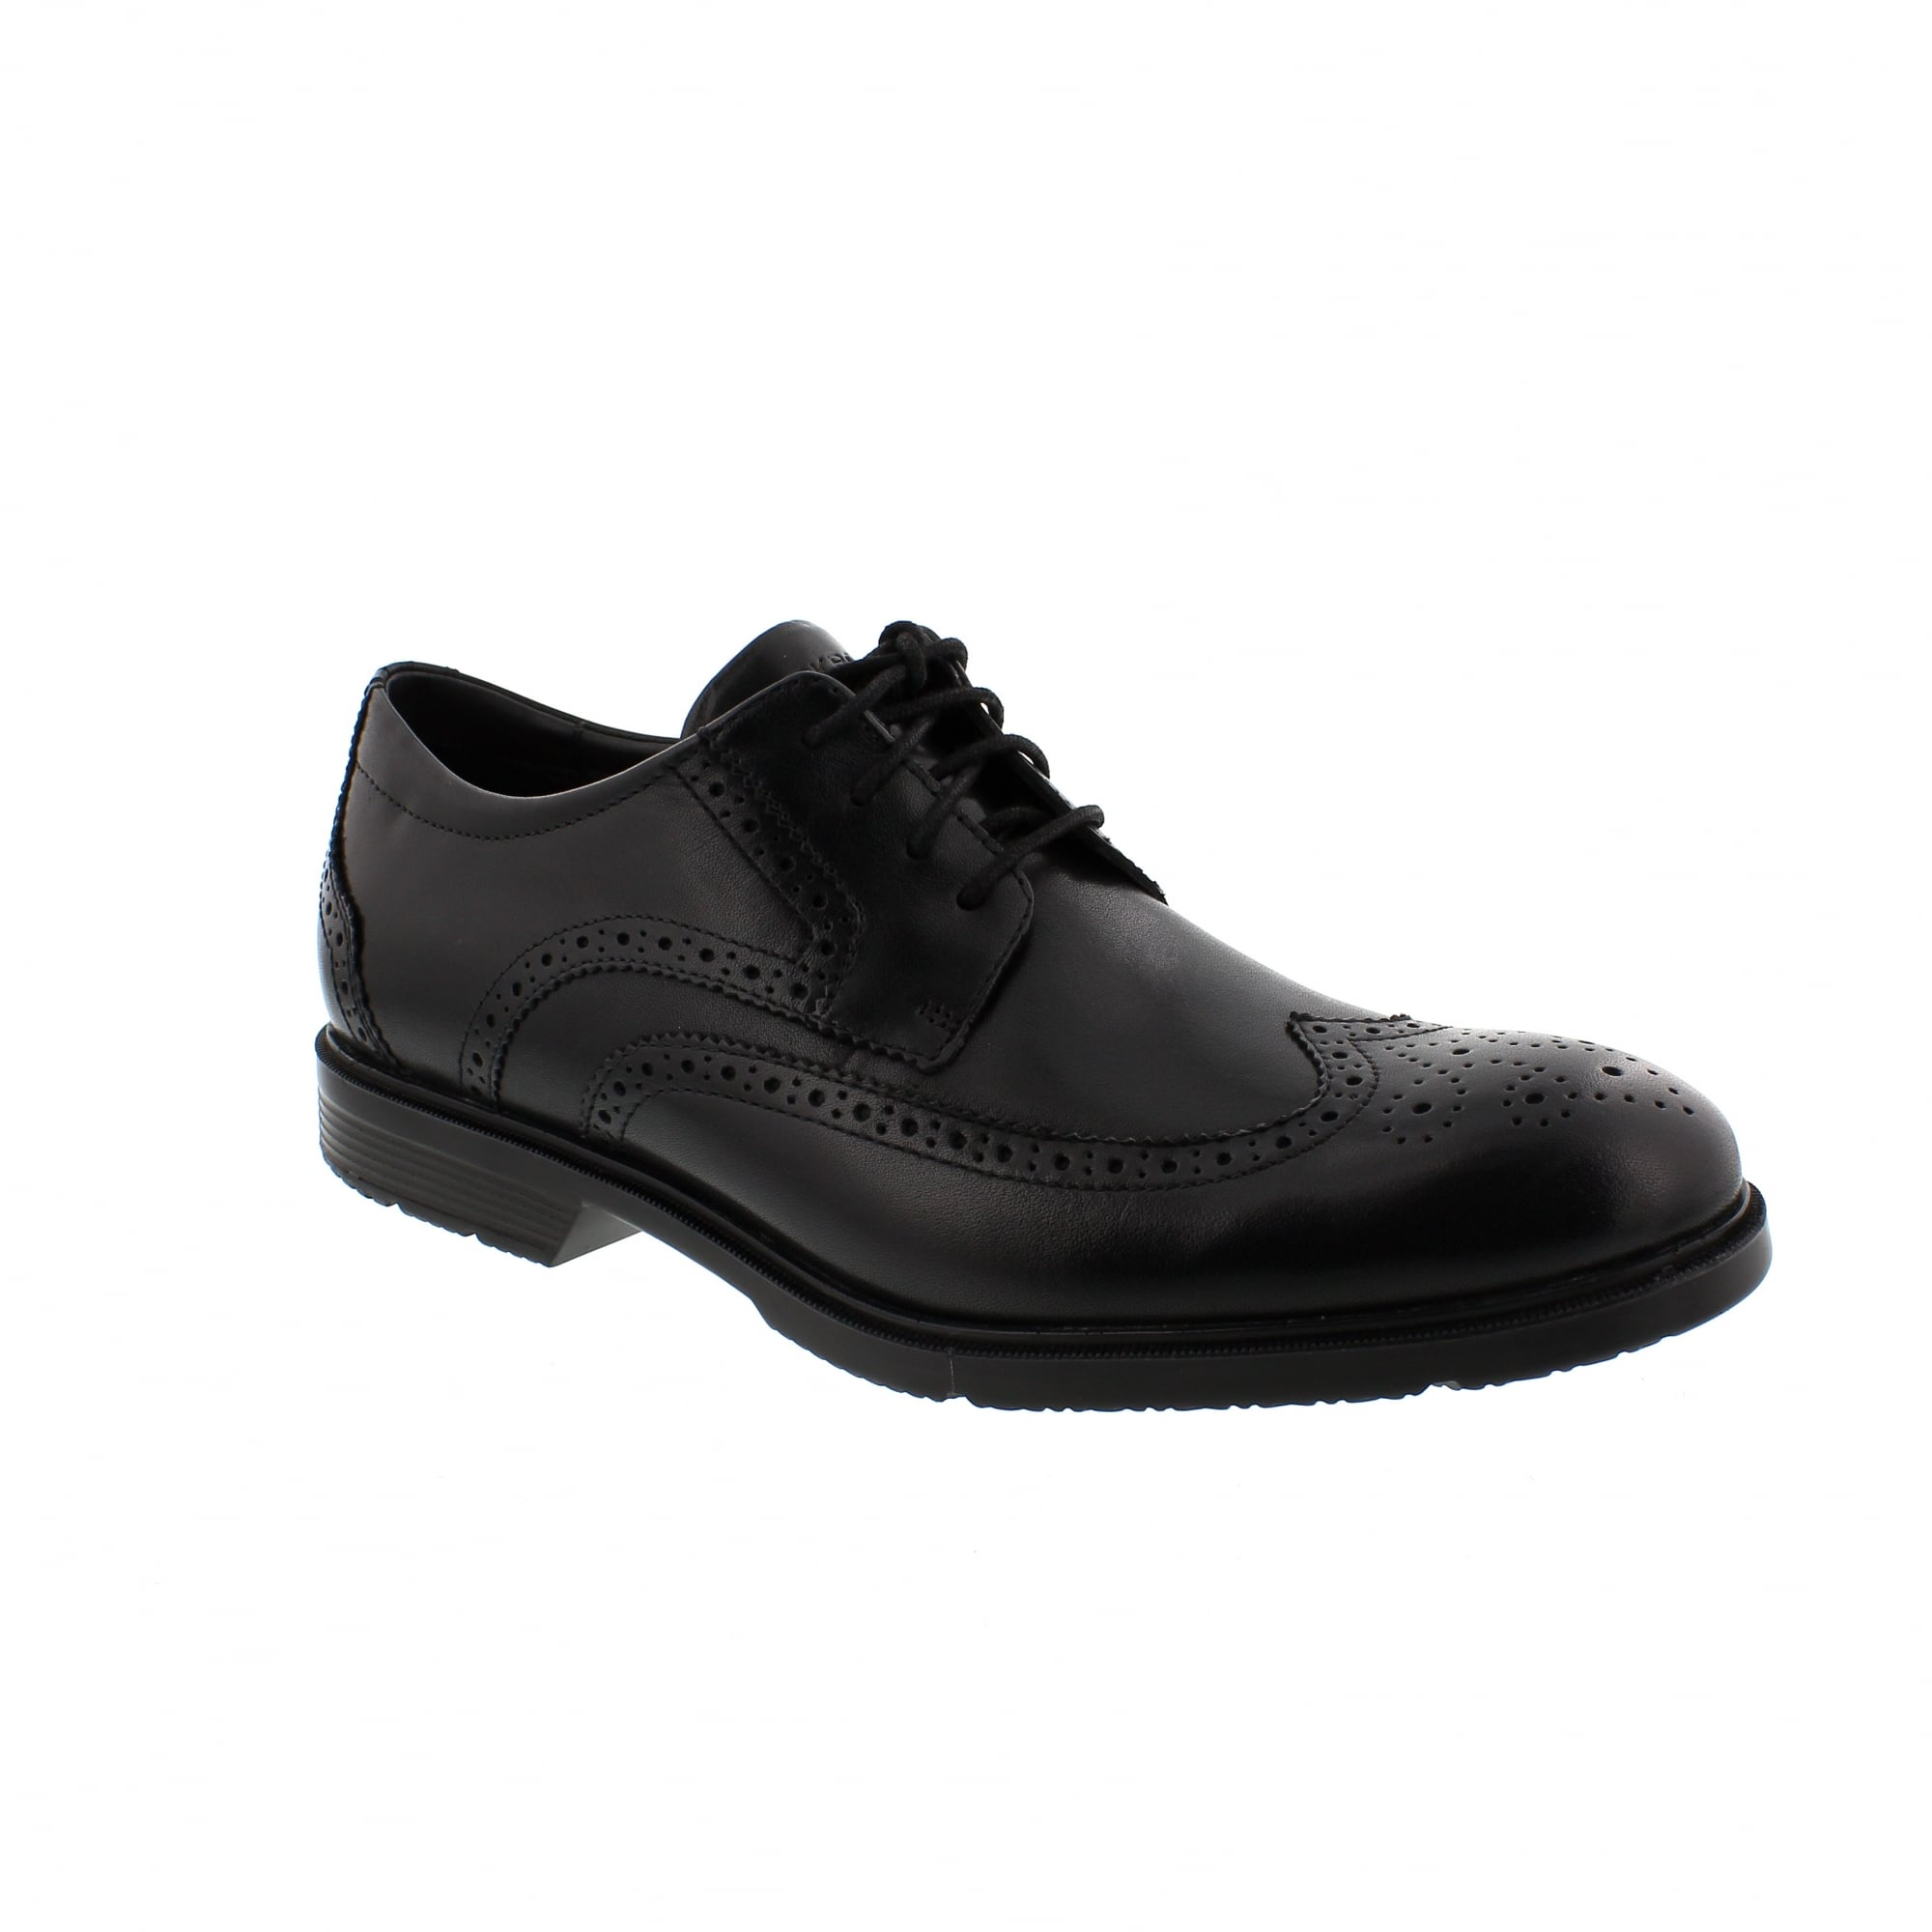 4c4aeea0d6d95 Rockport City Smart Wingtip   A12158 - Mens from Rogerson Shoes UK